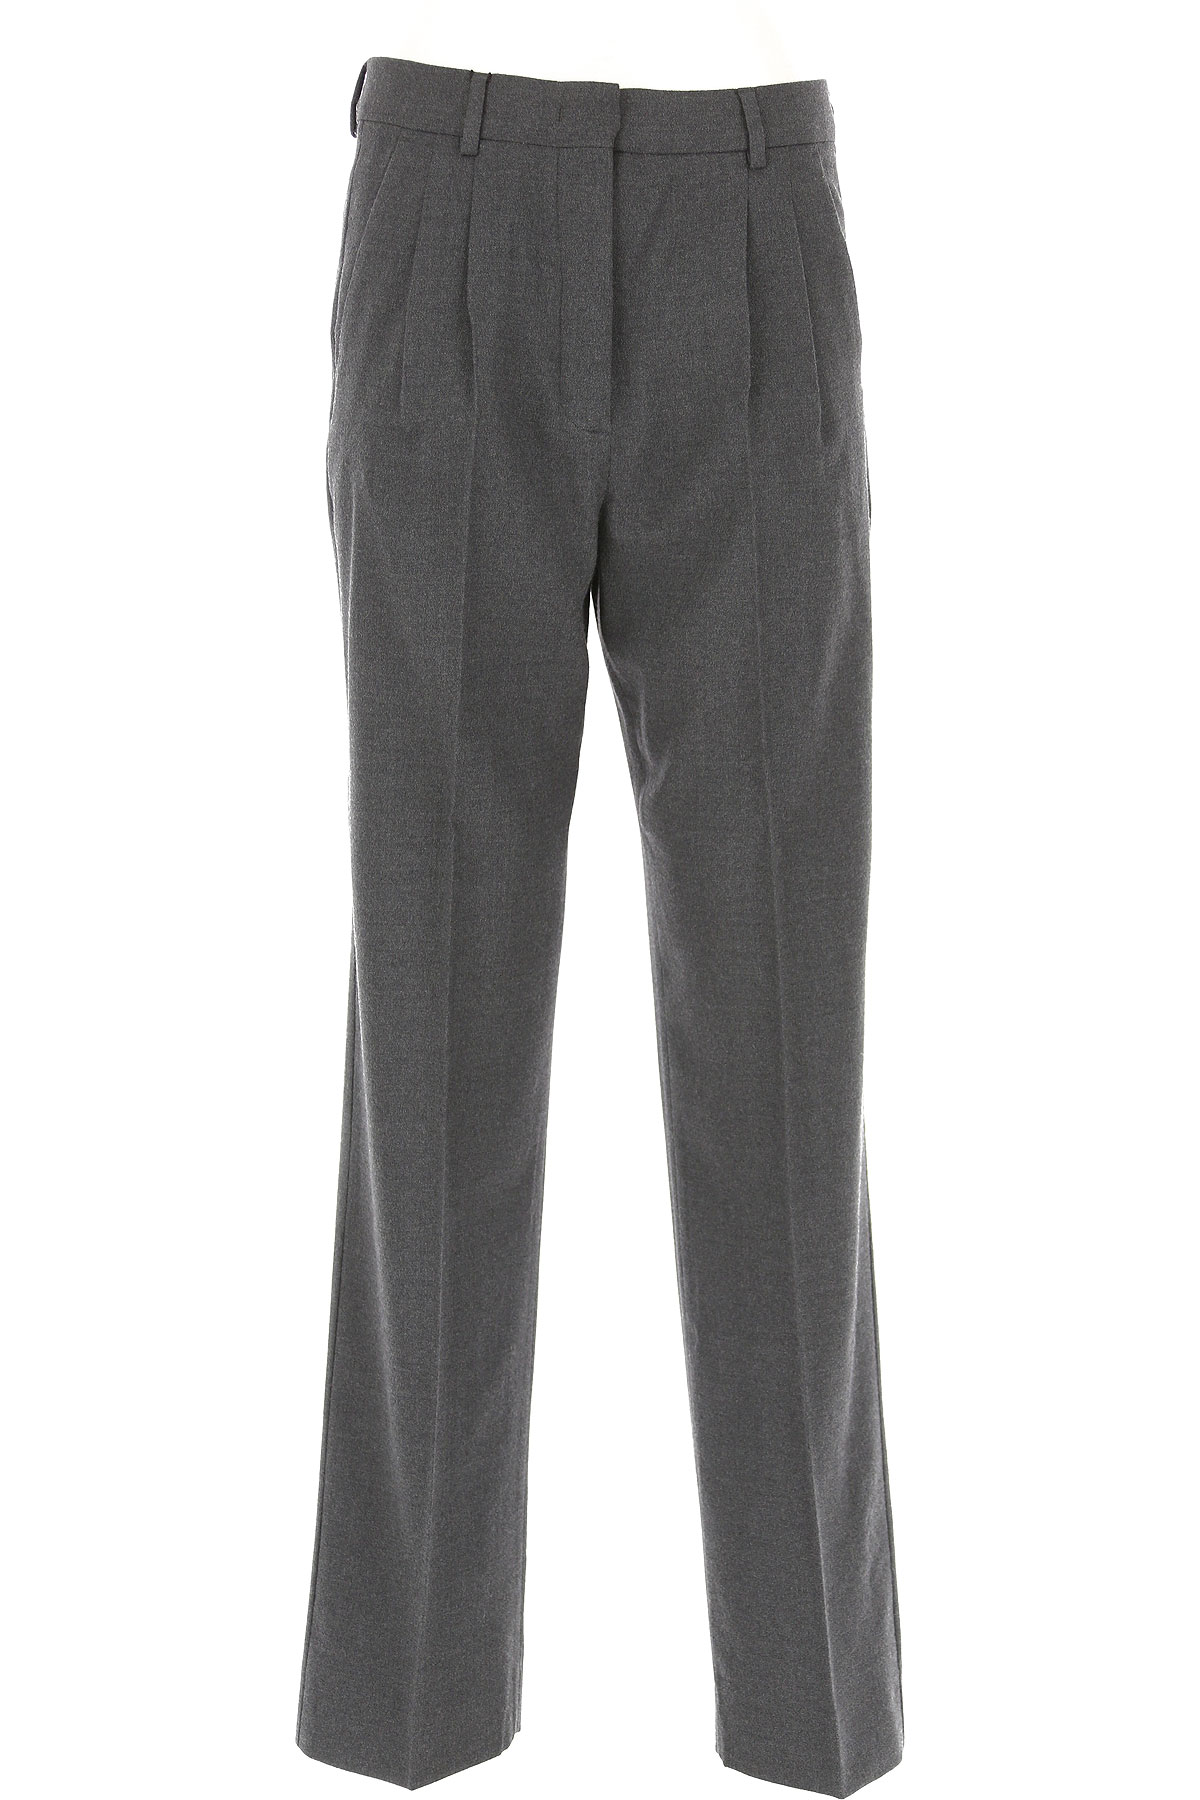 Image of Weekend by Max Mara Pants for Women, Grey, Virgin wool, 2017, 26 28 30 32 34